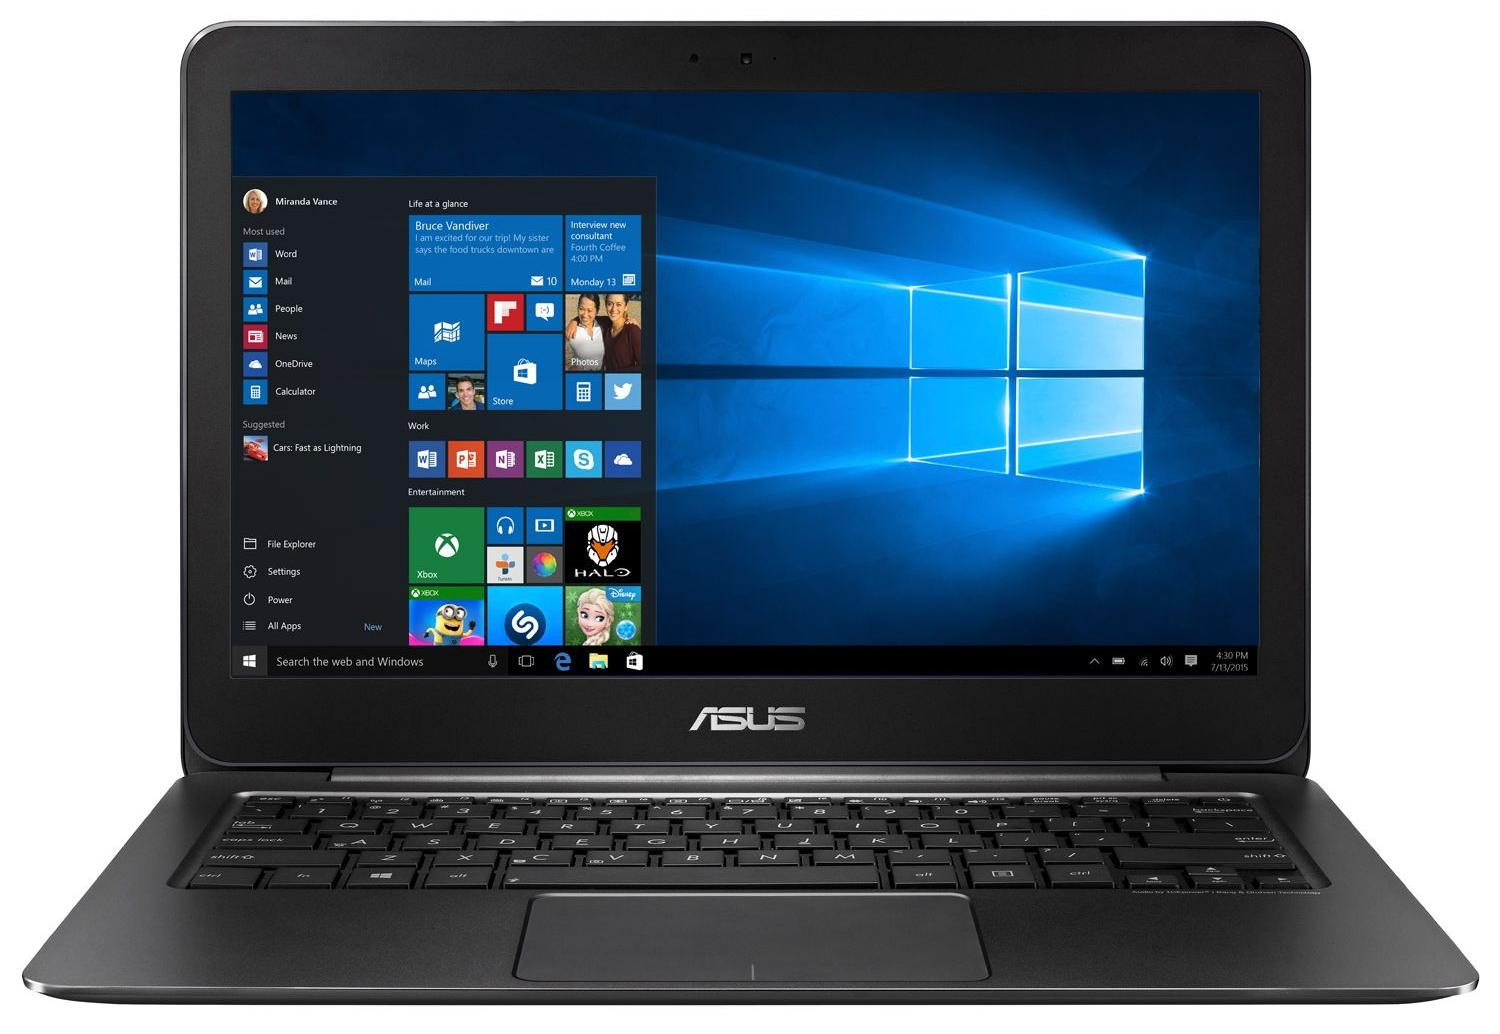 Ноутбук Asus X553SA-XX137T 15.6, Intel Celeron N3050 1.6Ghz, 2Gb, 500Gb HDD (90NB0AC1-M04470) morazora bind pu solid high heels shoes 5cm in summer fashion elegant party shoes sandals party large size 34 42